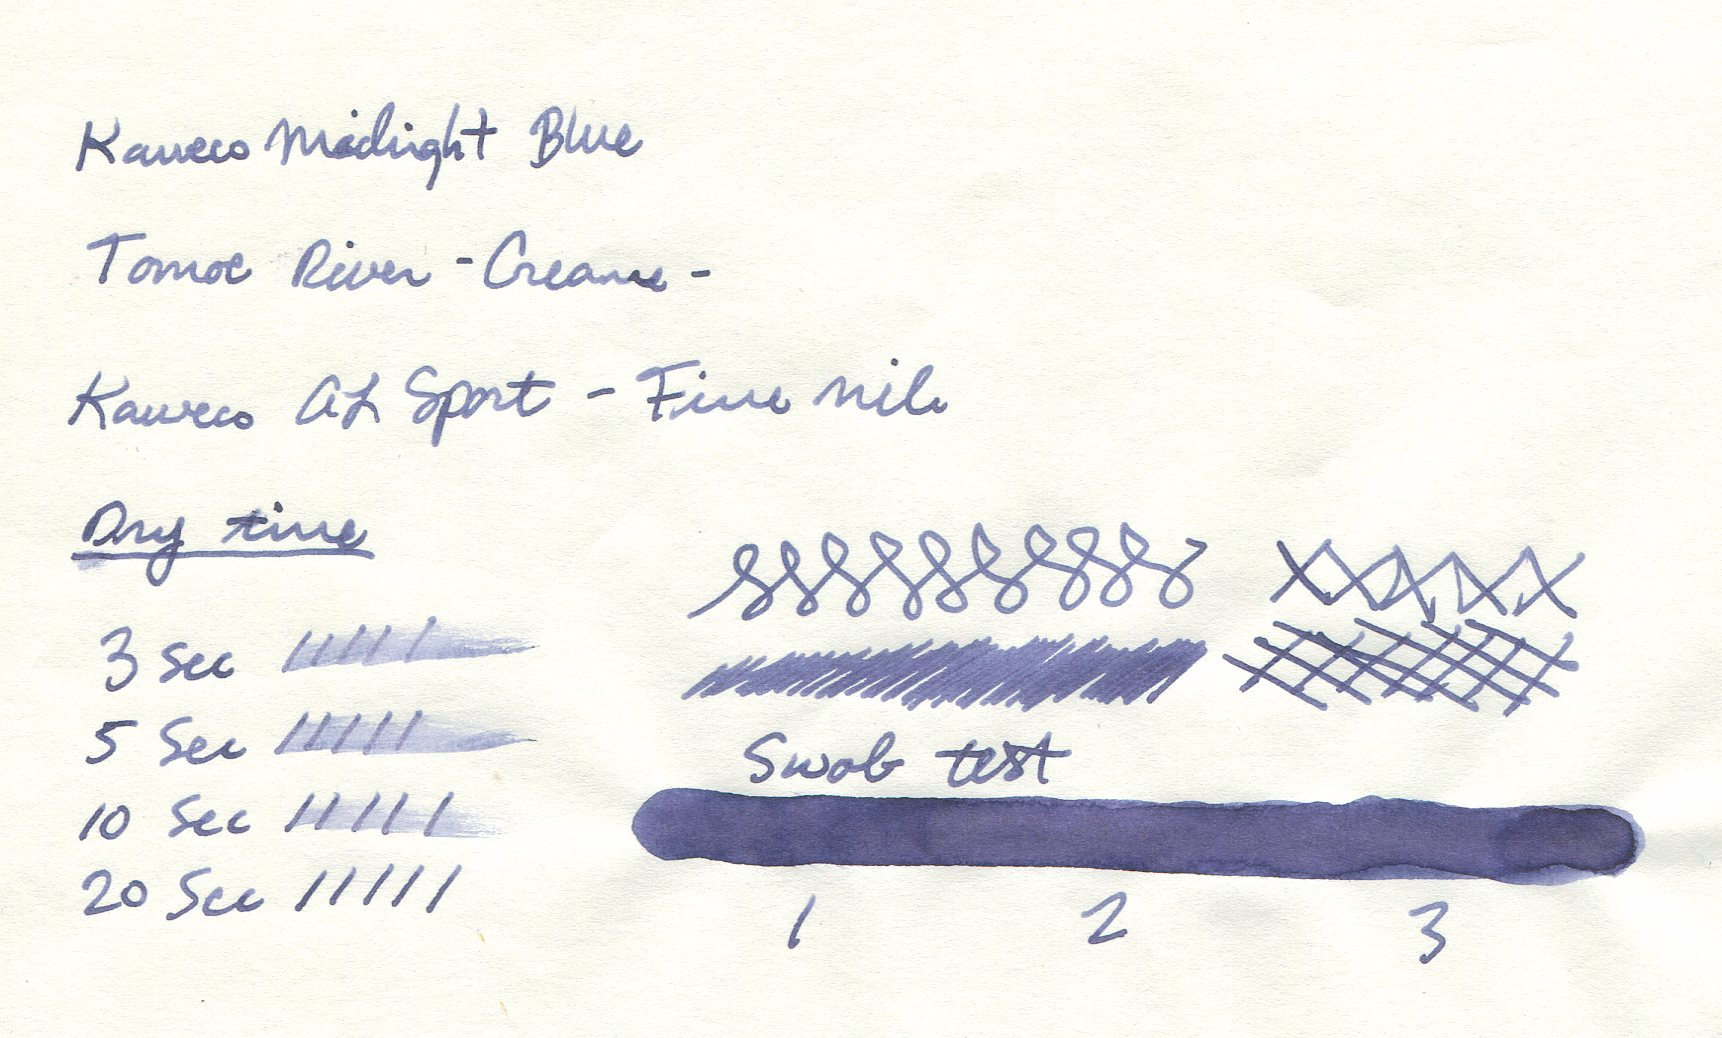 Kaweco-Midnight-Blue-Tomoe-River-051